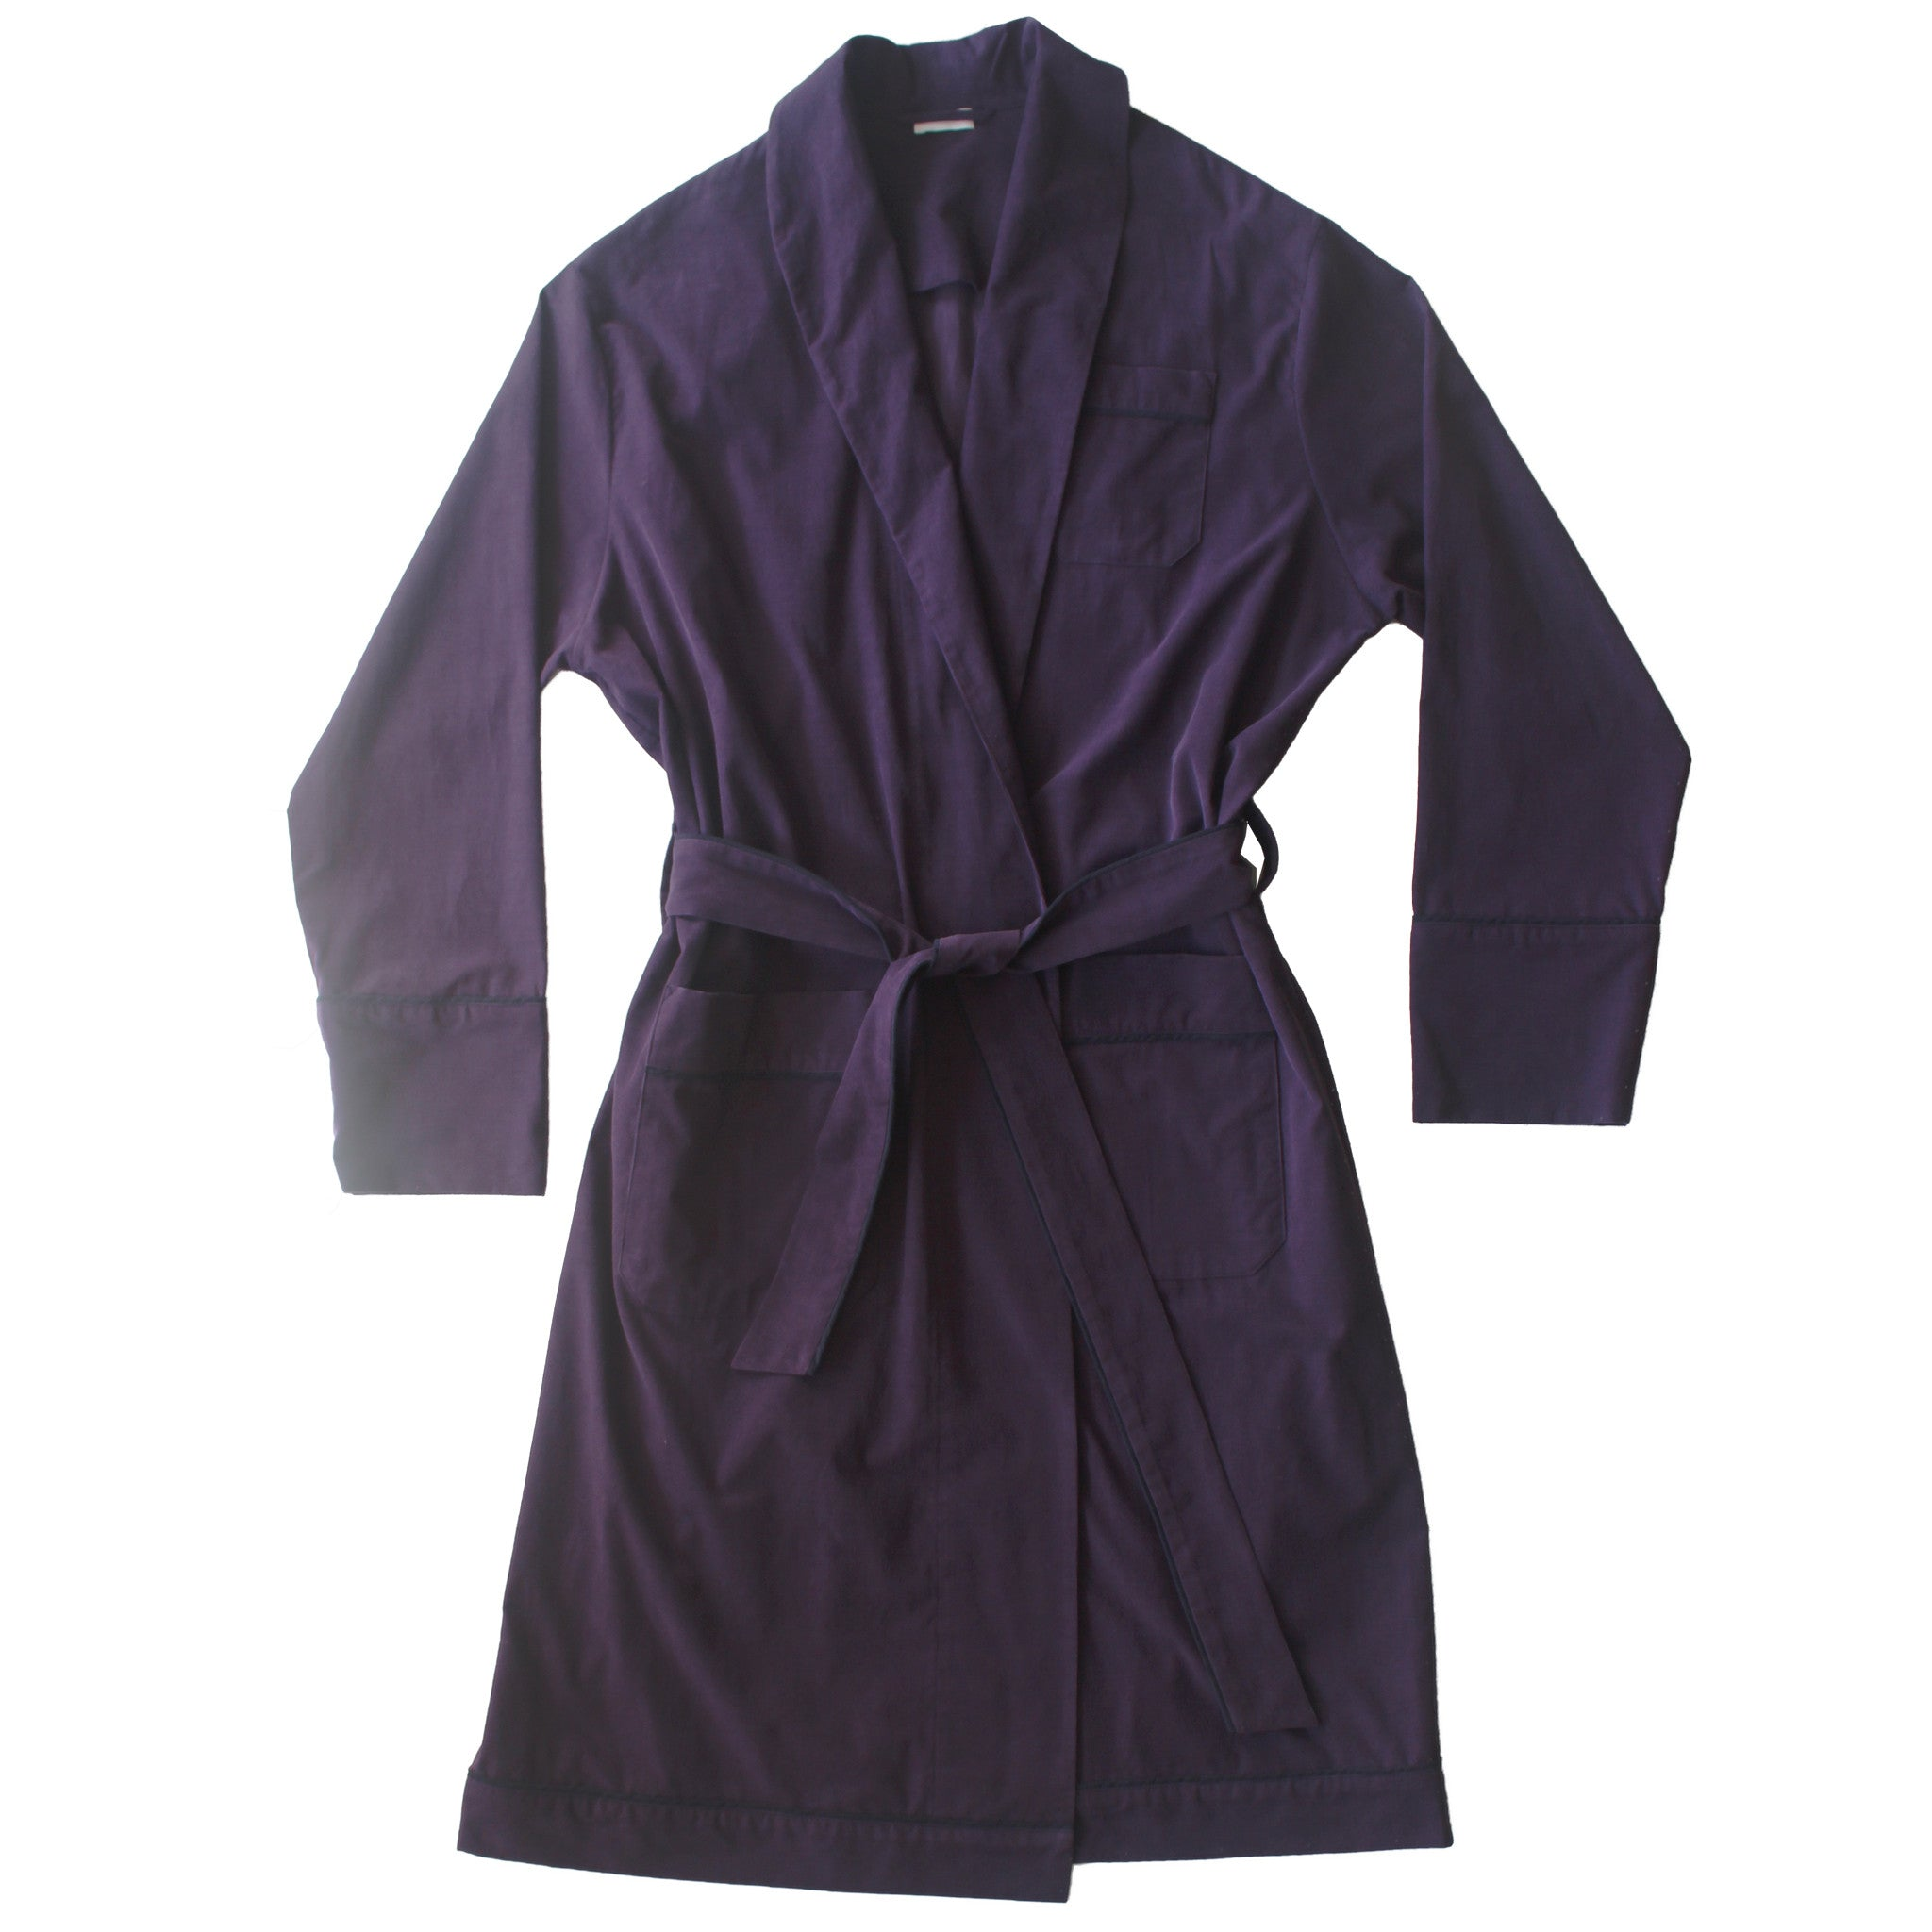 Janus Robe in Plum Italian Cotton Corduroy